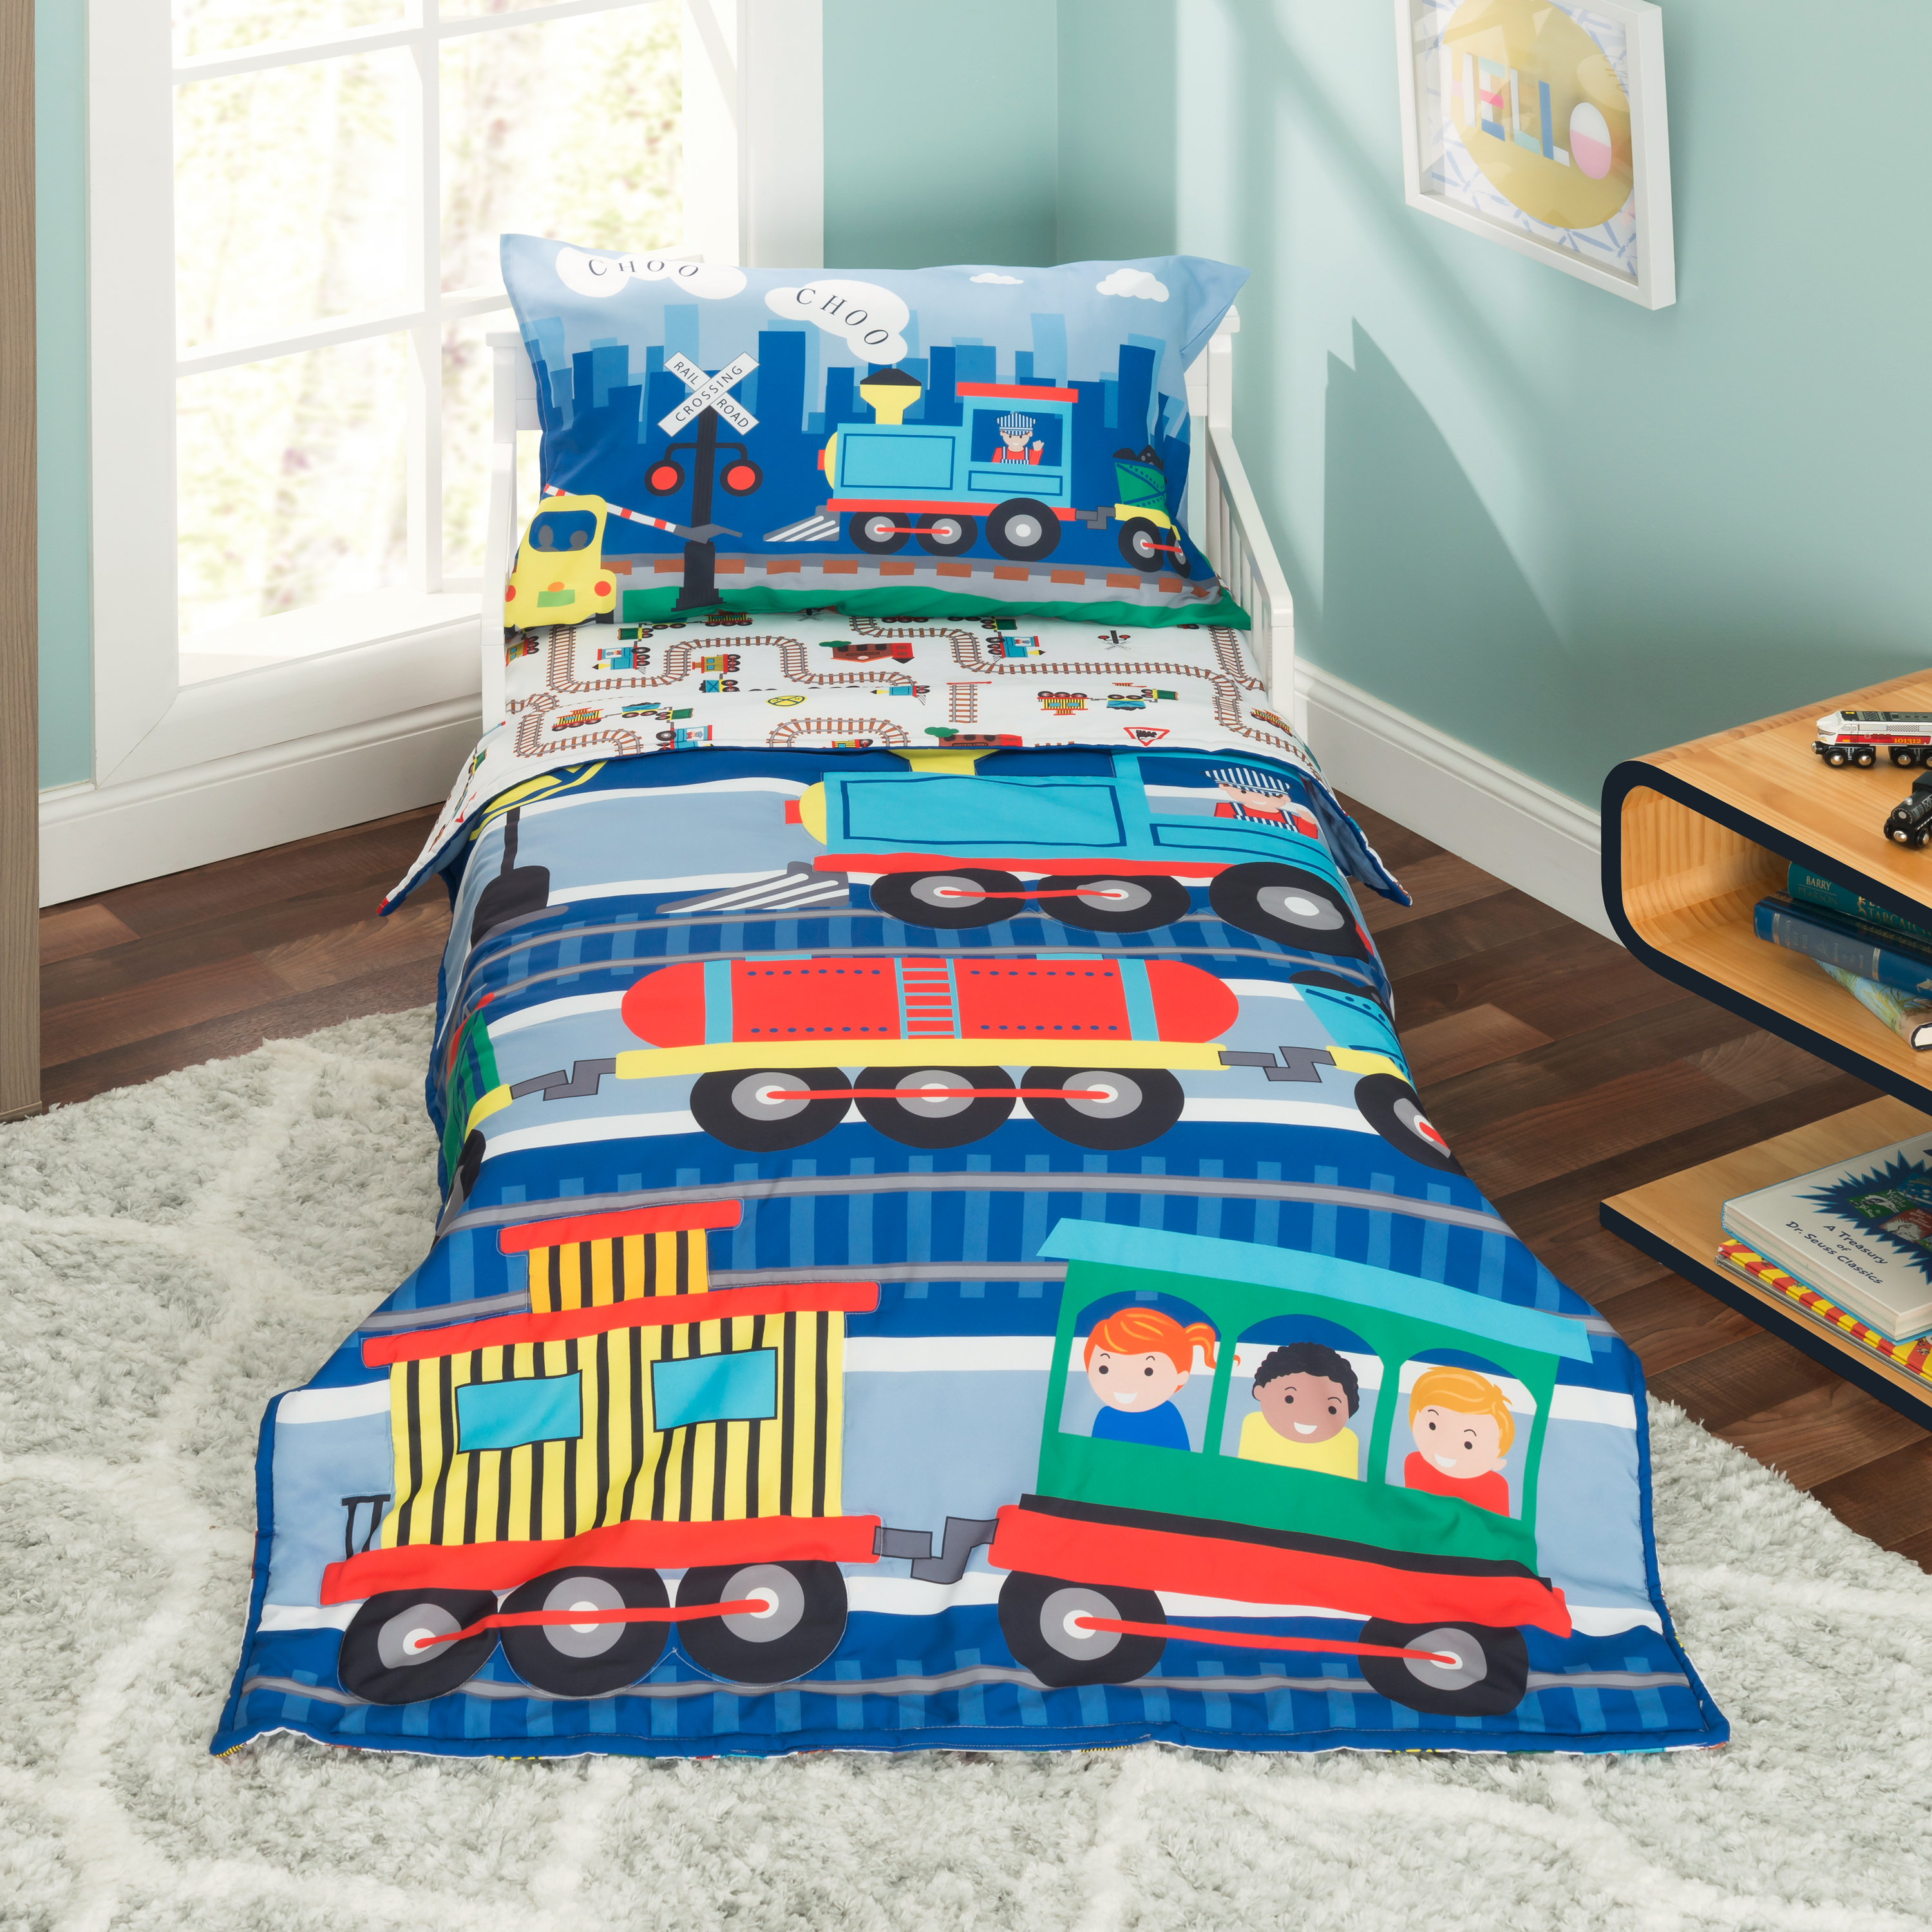 Everyday Kids 4 Piece Toddler Bedding Set - Choo Choo Train